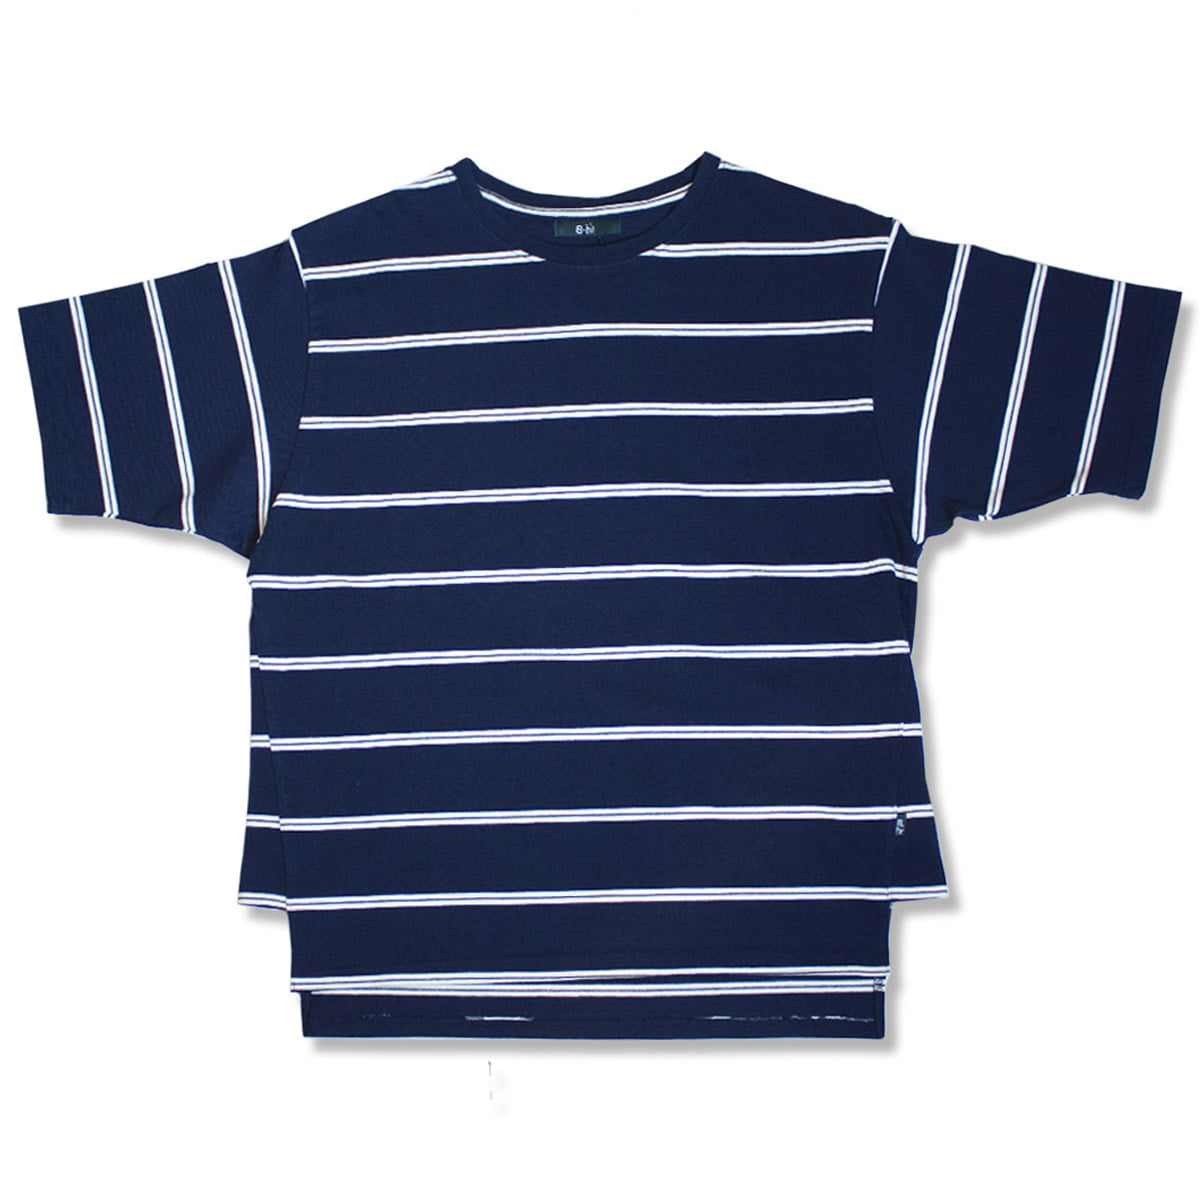 [BEHEAVYER] TUNIC T-SHIRT 'NAVY STRIPE'